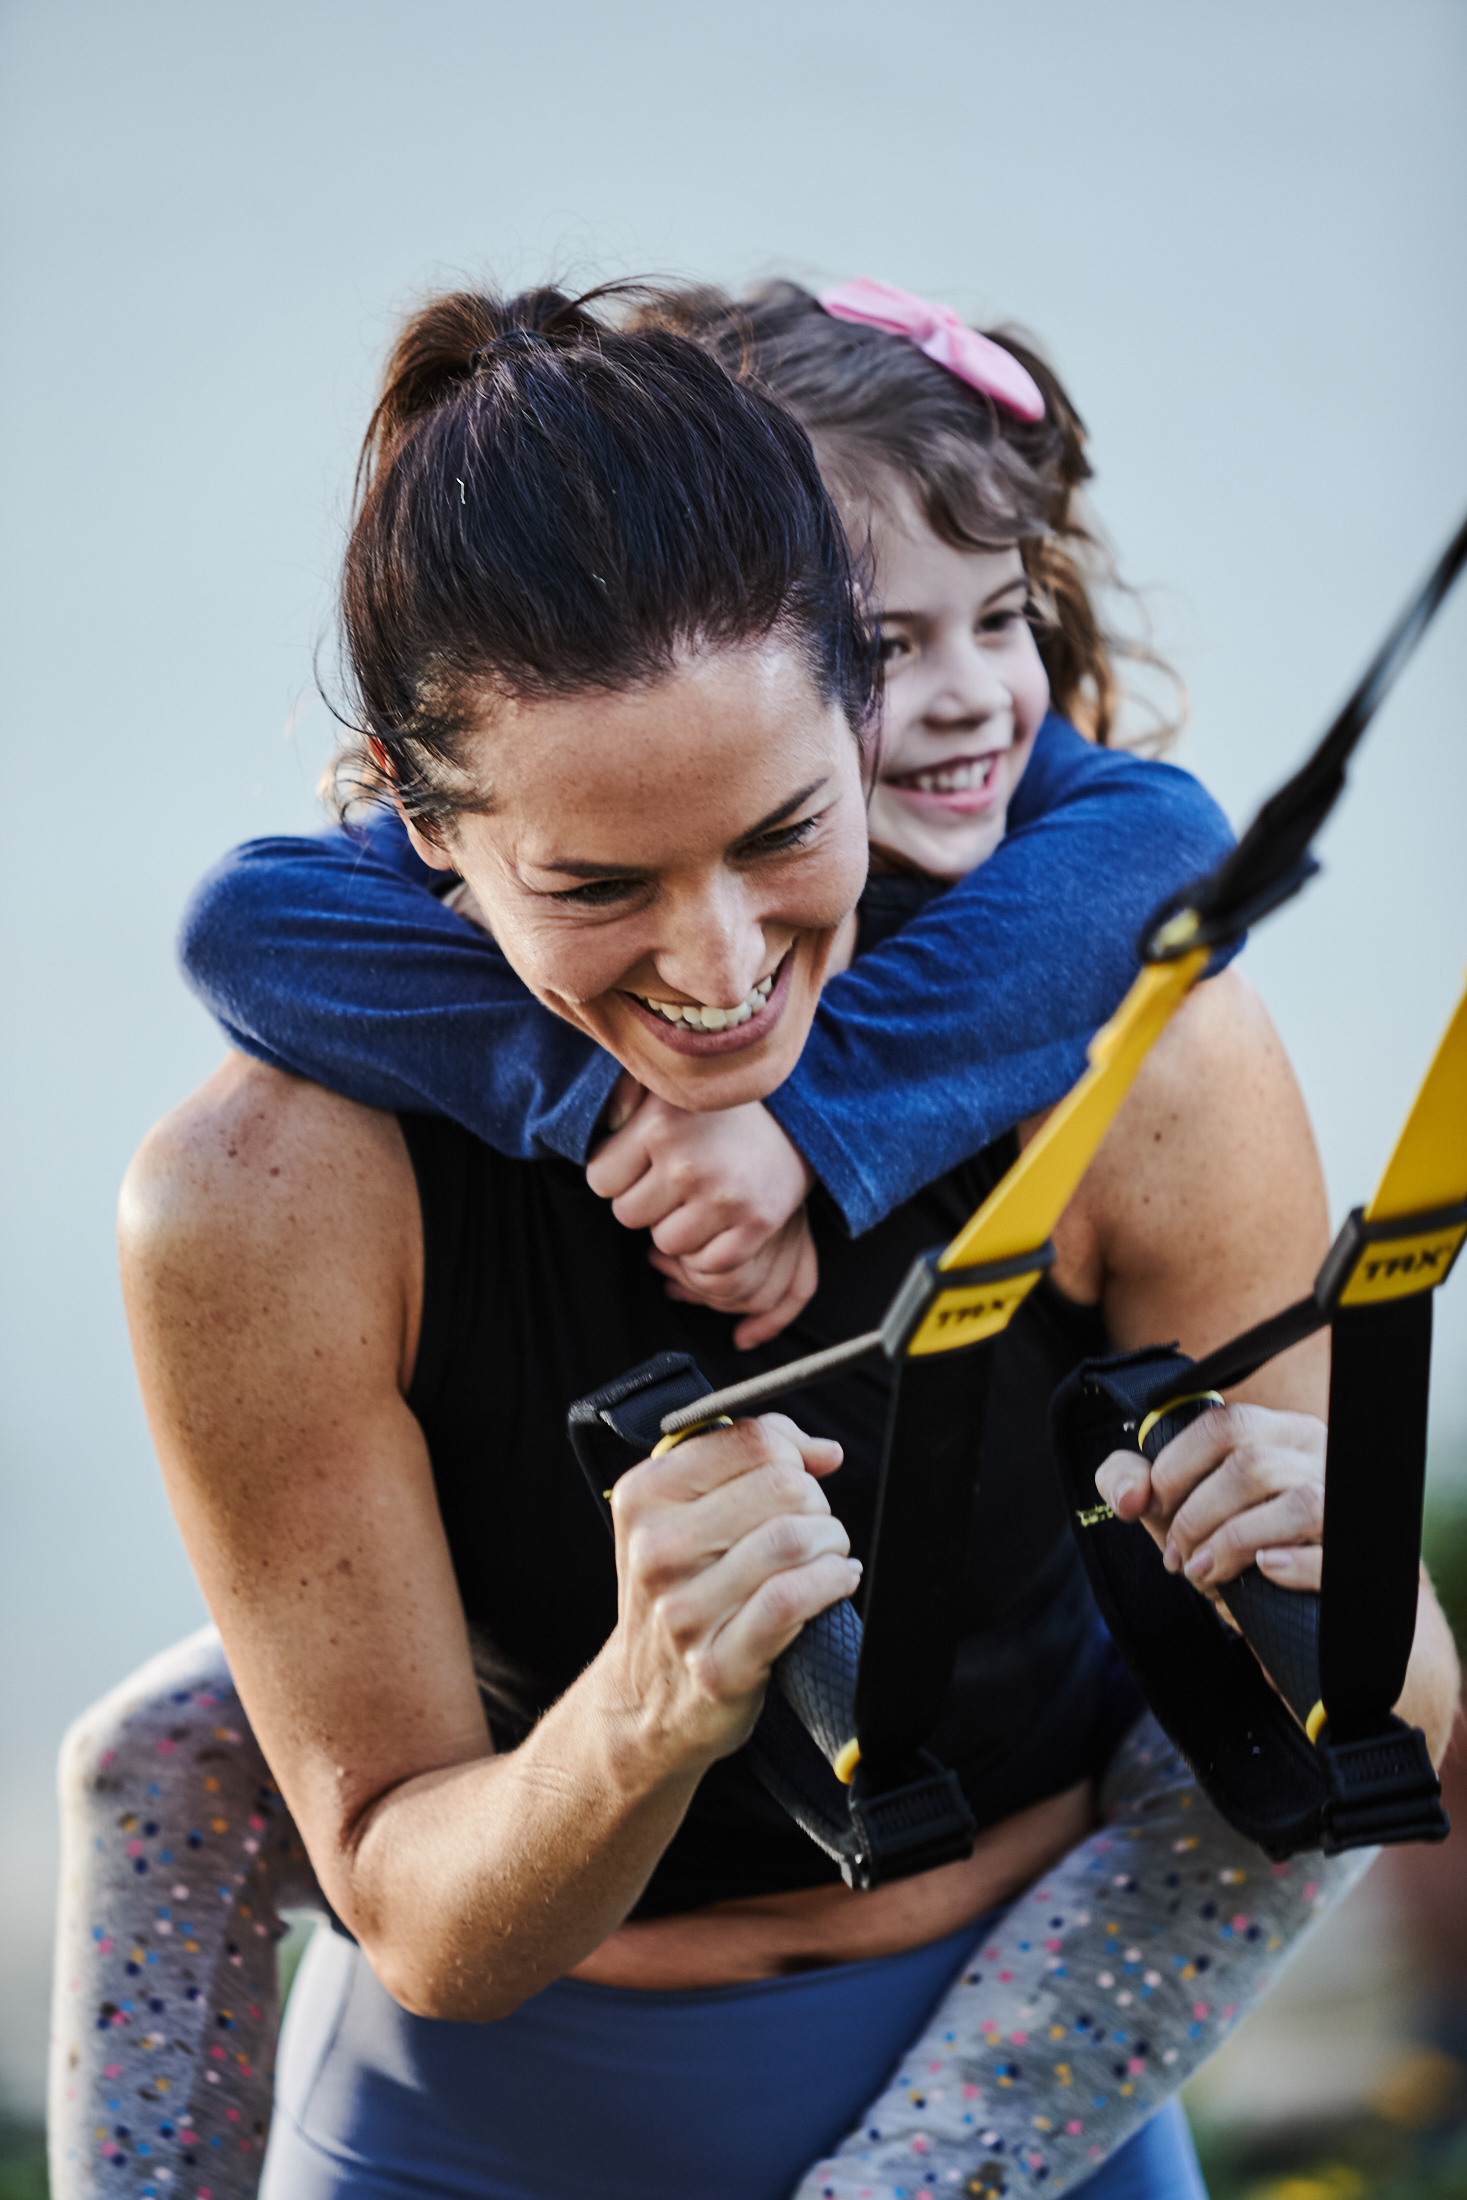 Kristin Leffel performs a TRX squat with one of her children hanging on her back